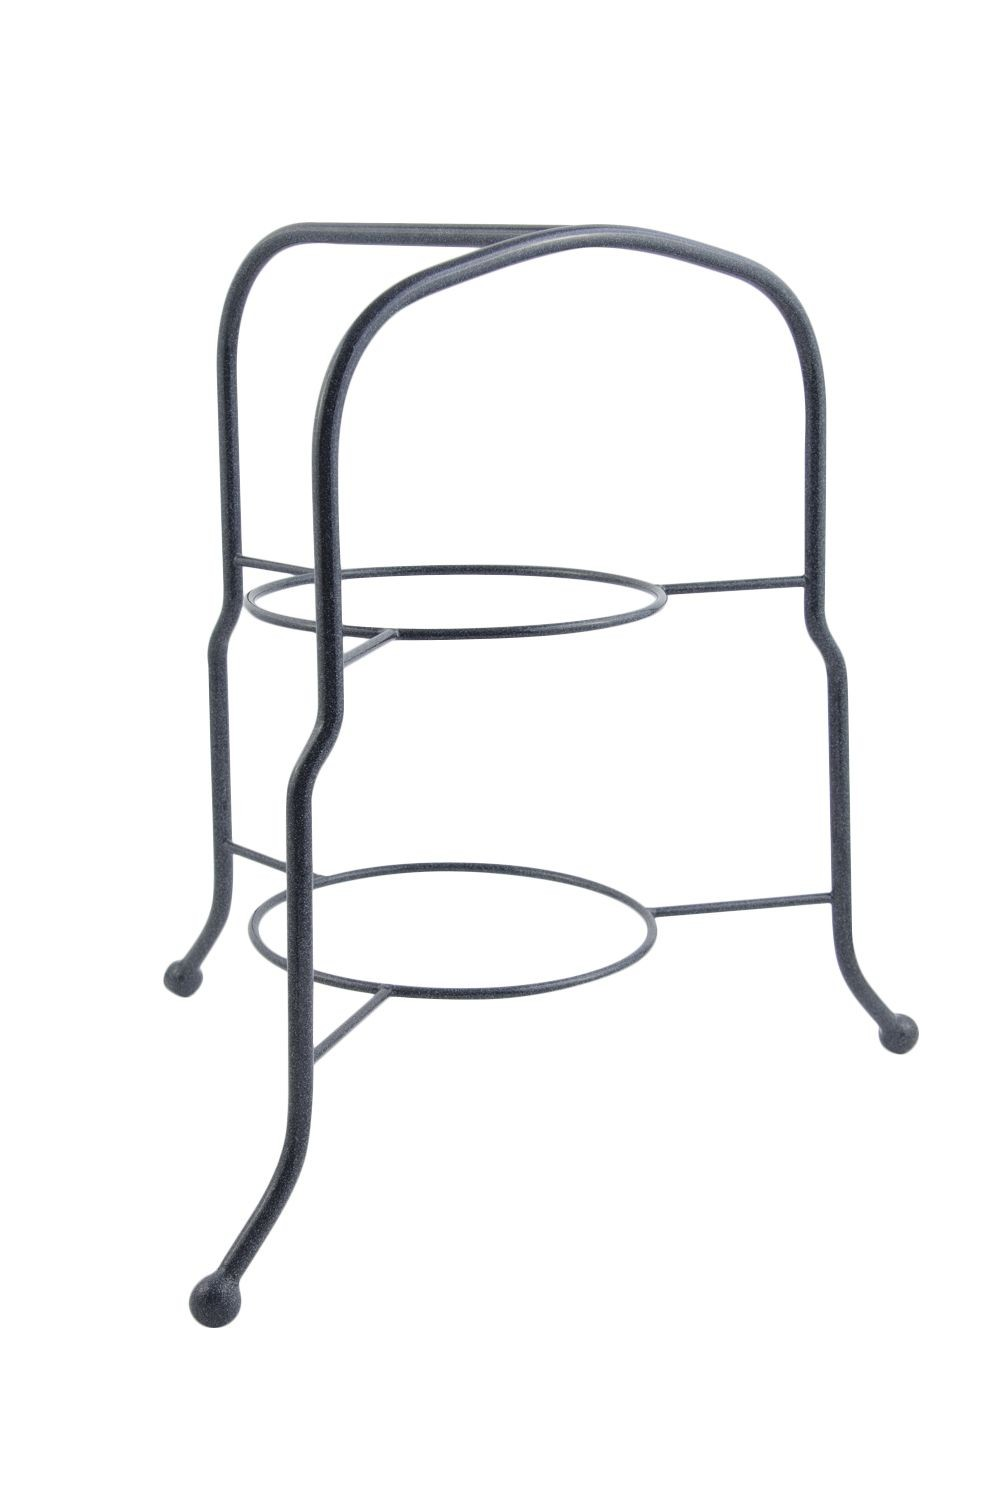 bon chef 7004s wire display stand for 2036  2067  9091  9092  sandstone 20 u0026quot  x 15 1  2 u0026quot